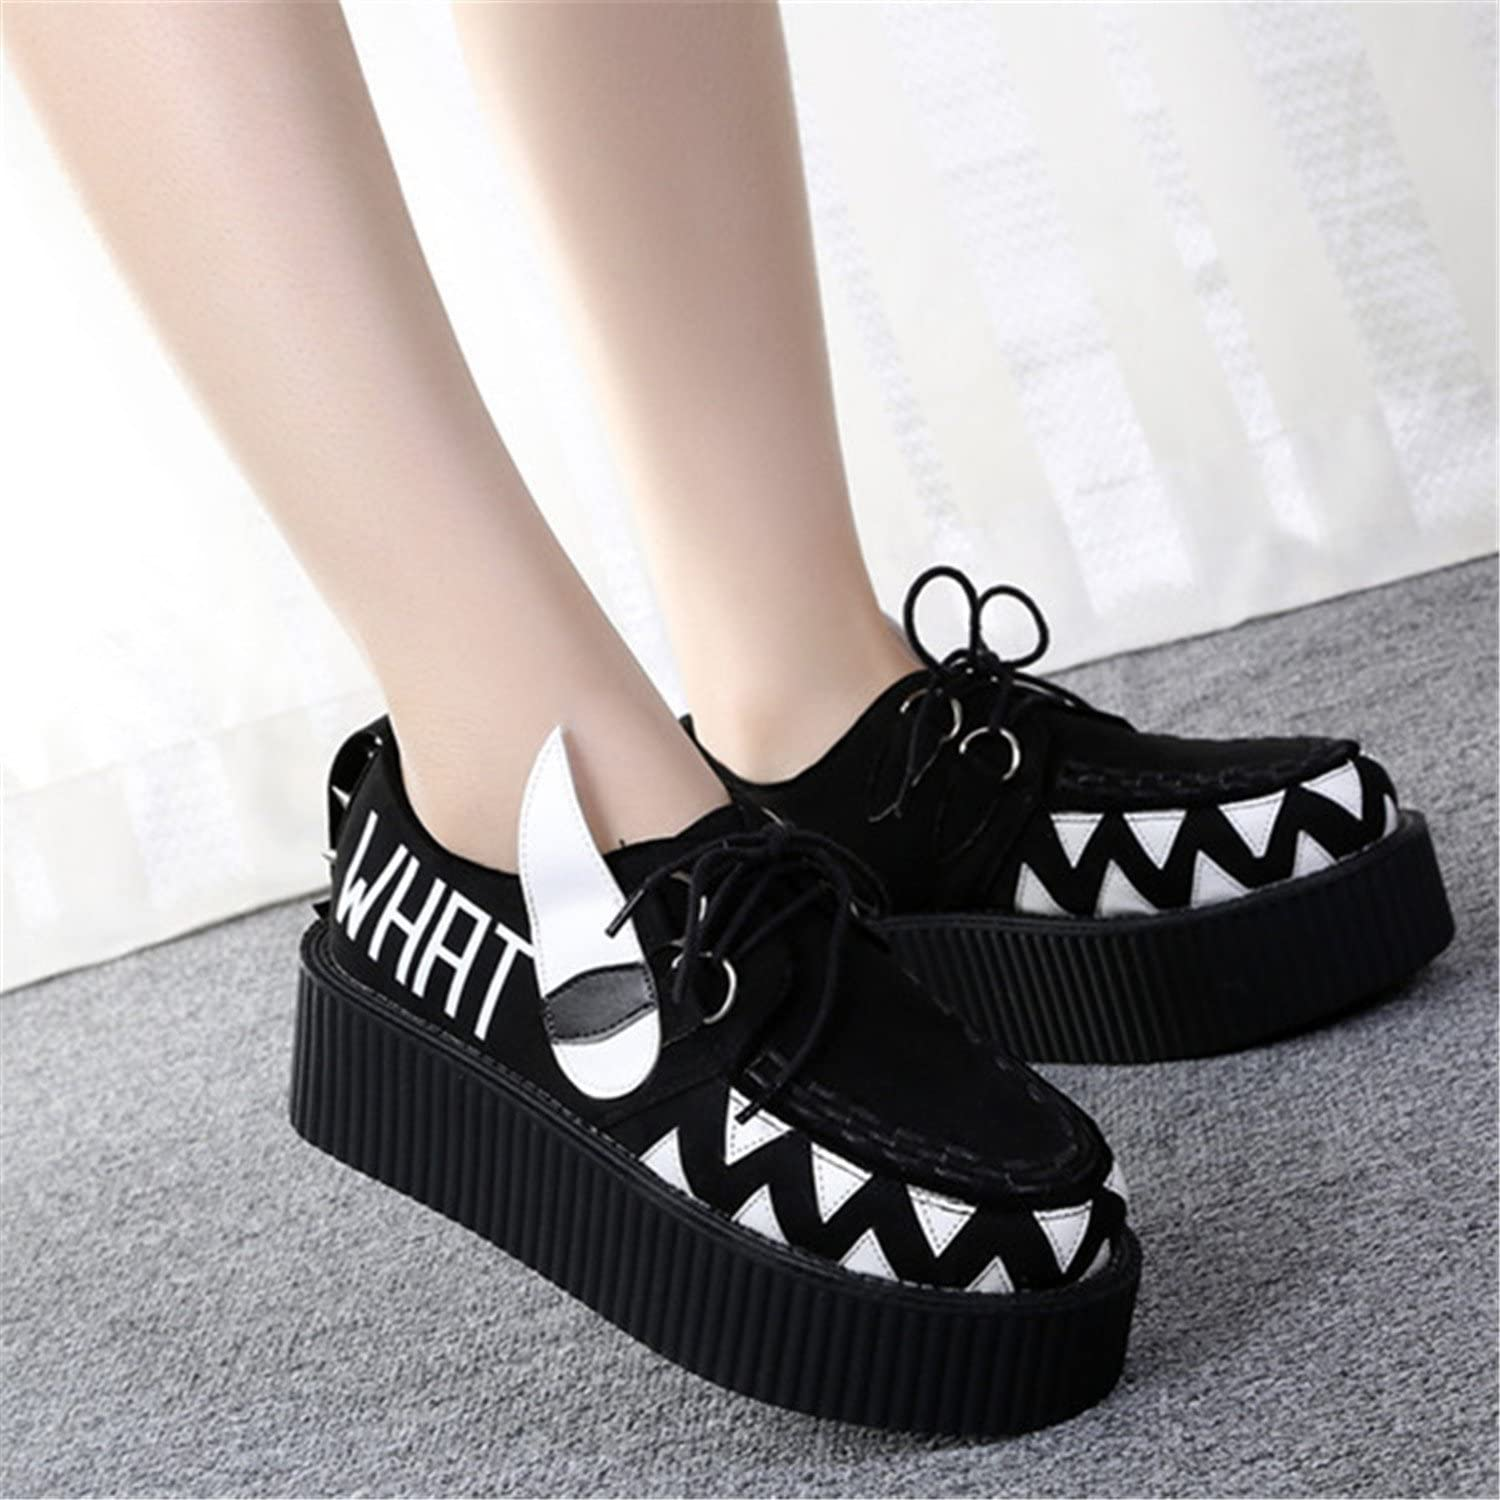 Robert Westbrook Flat Creepers Platform shoes for Woman Casual Women Punk Creeper Pattern shoes Ladies Girls